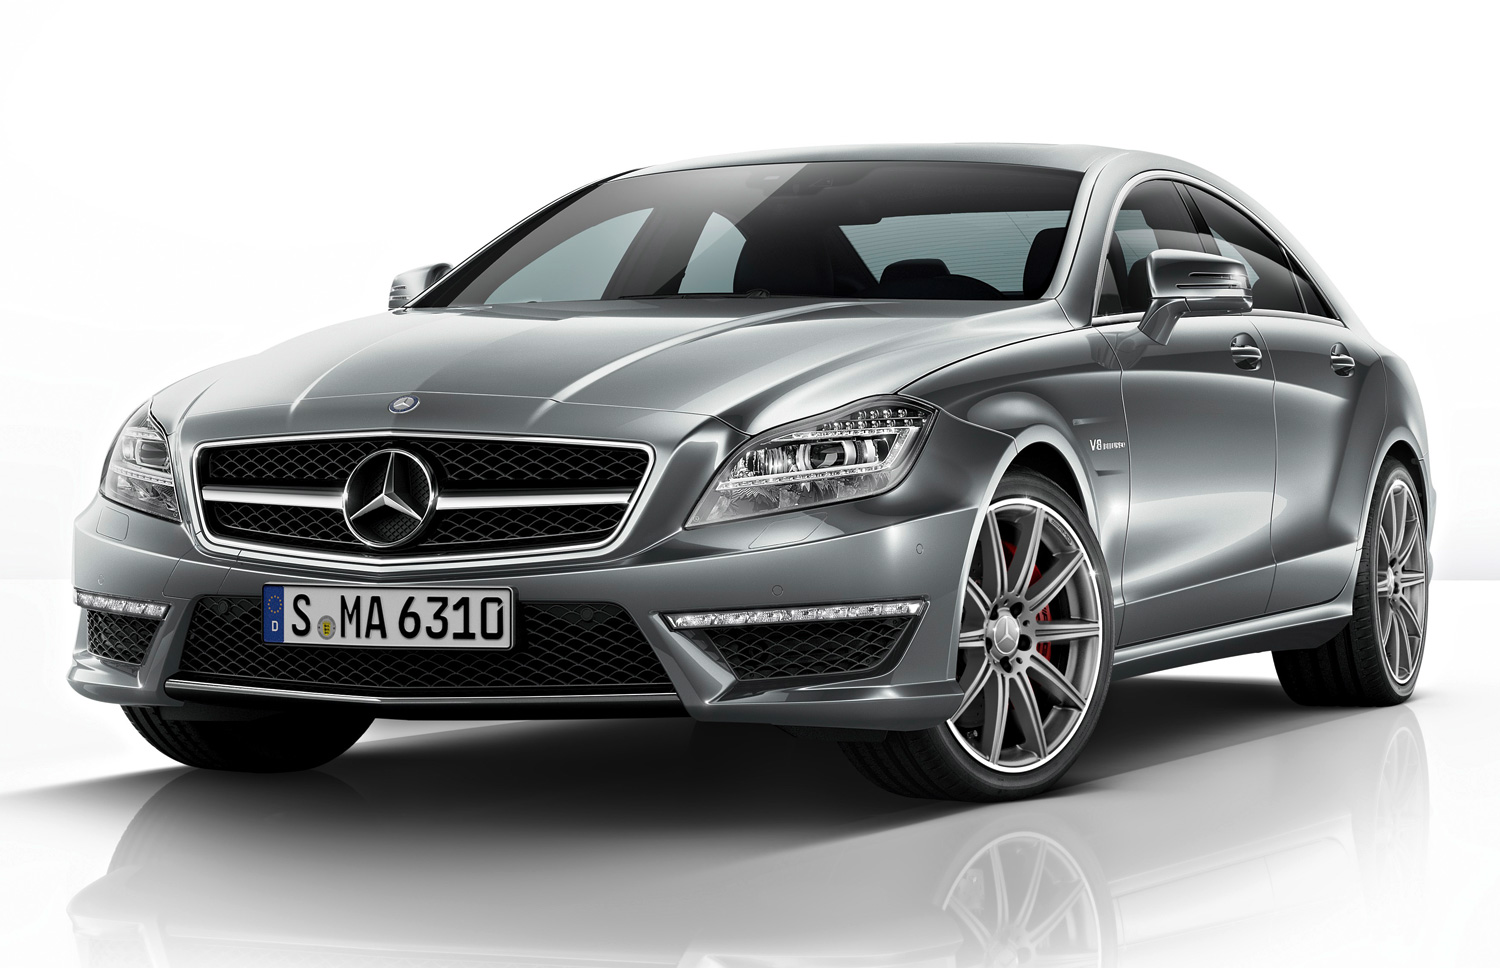 Updated 2014 Mercedes Benz Cls63 Amg Adds Awd New S Model Motor Trend